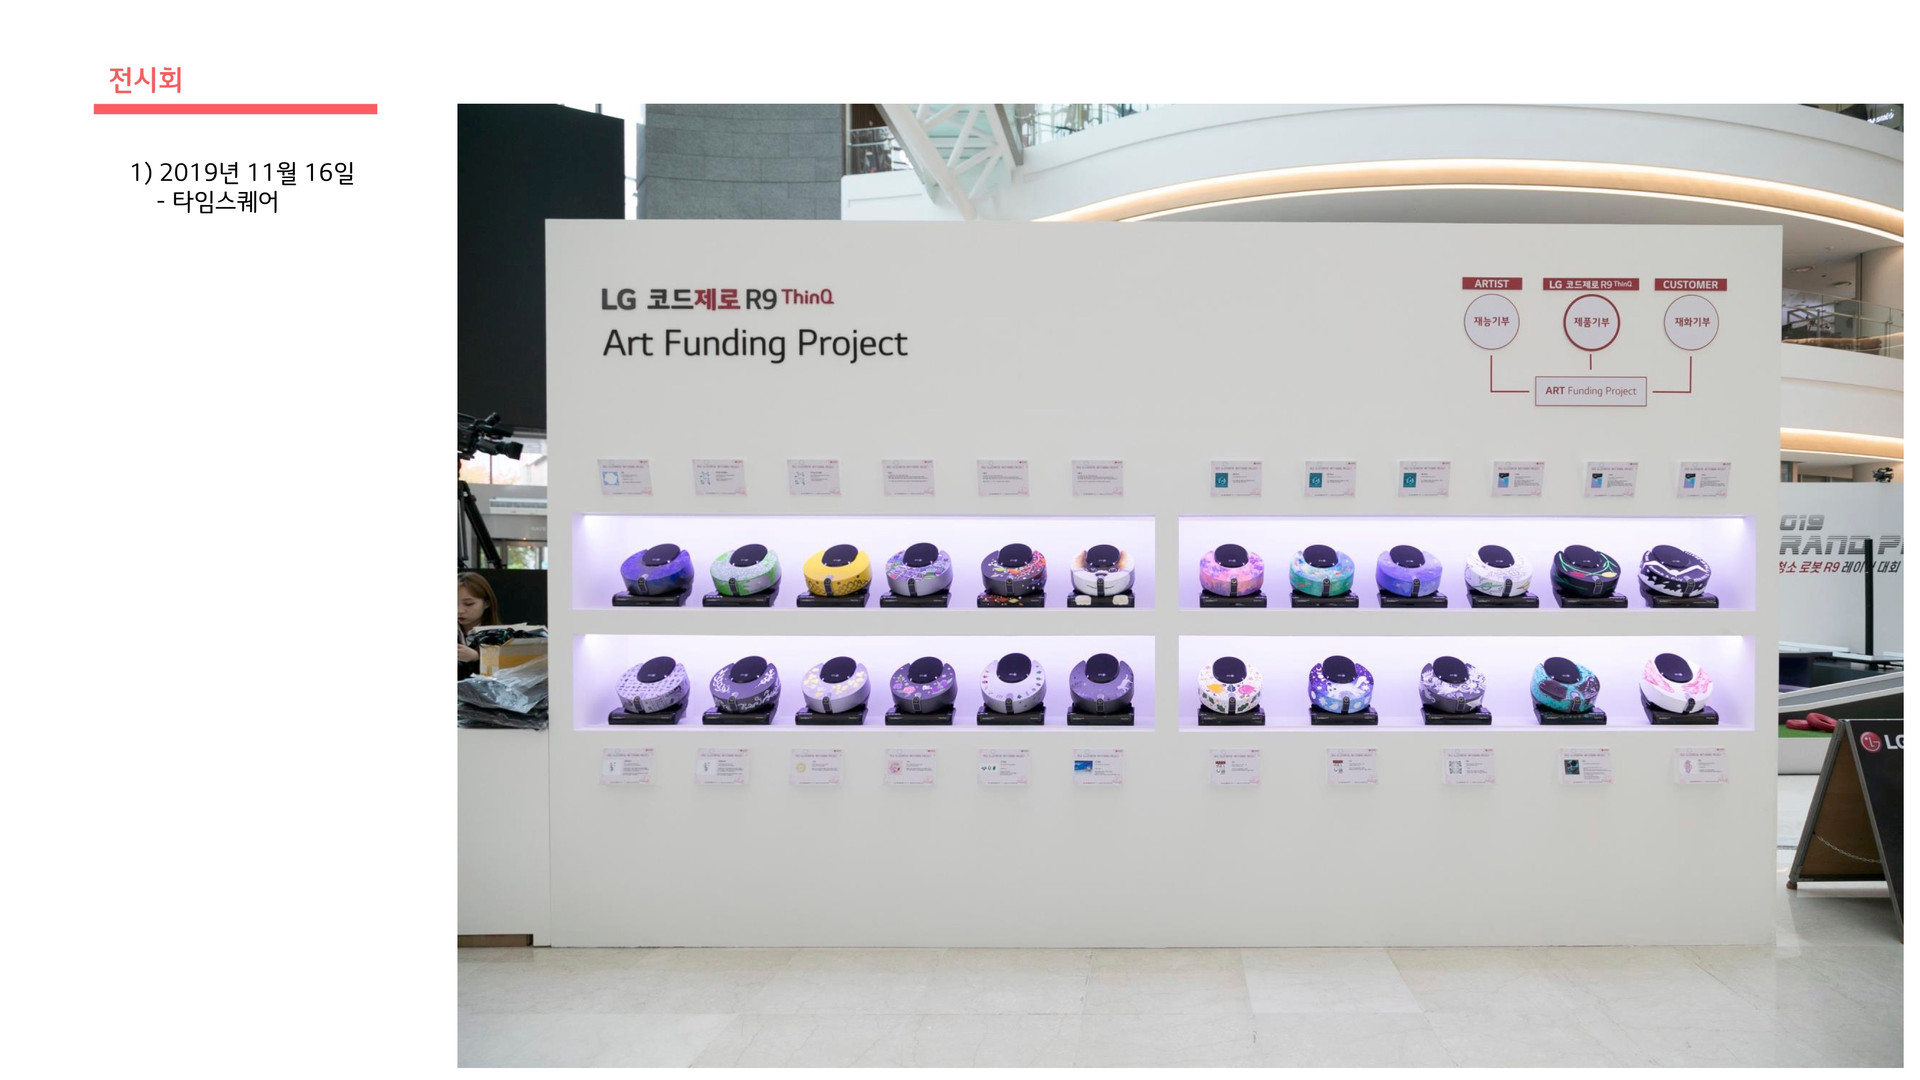 ART Funding Project_Exhibition_1 2.JPG